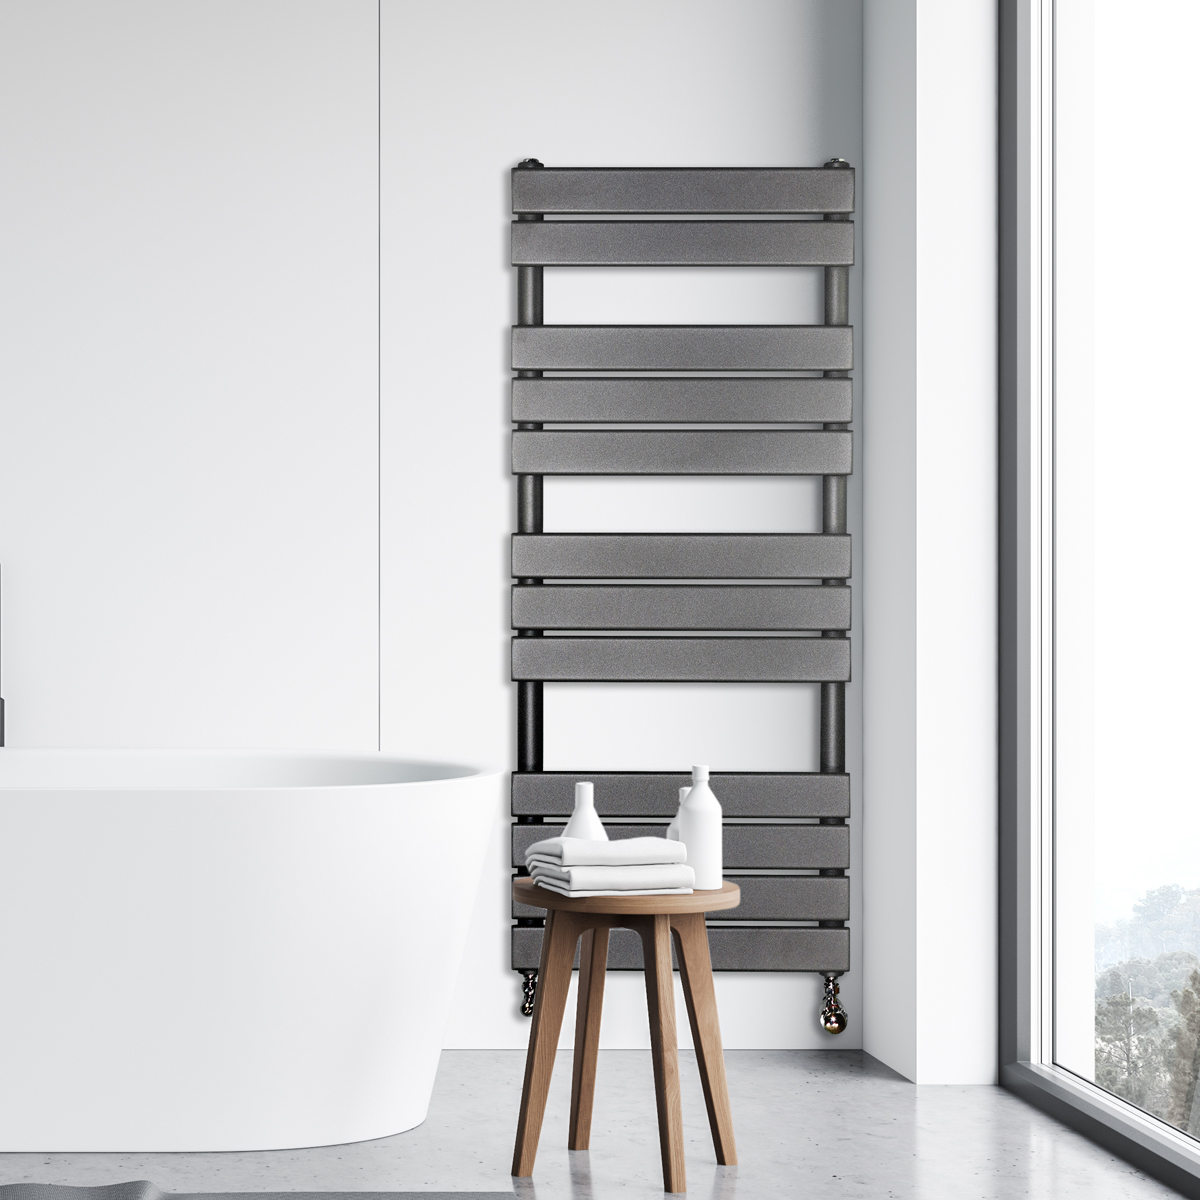 grey adige designer towel radiator 12 panels.jpg